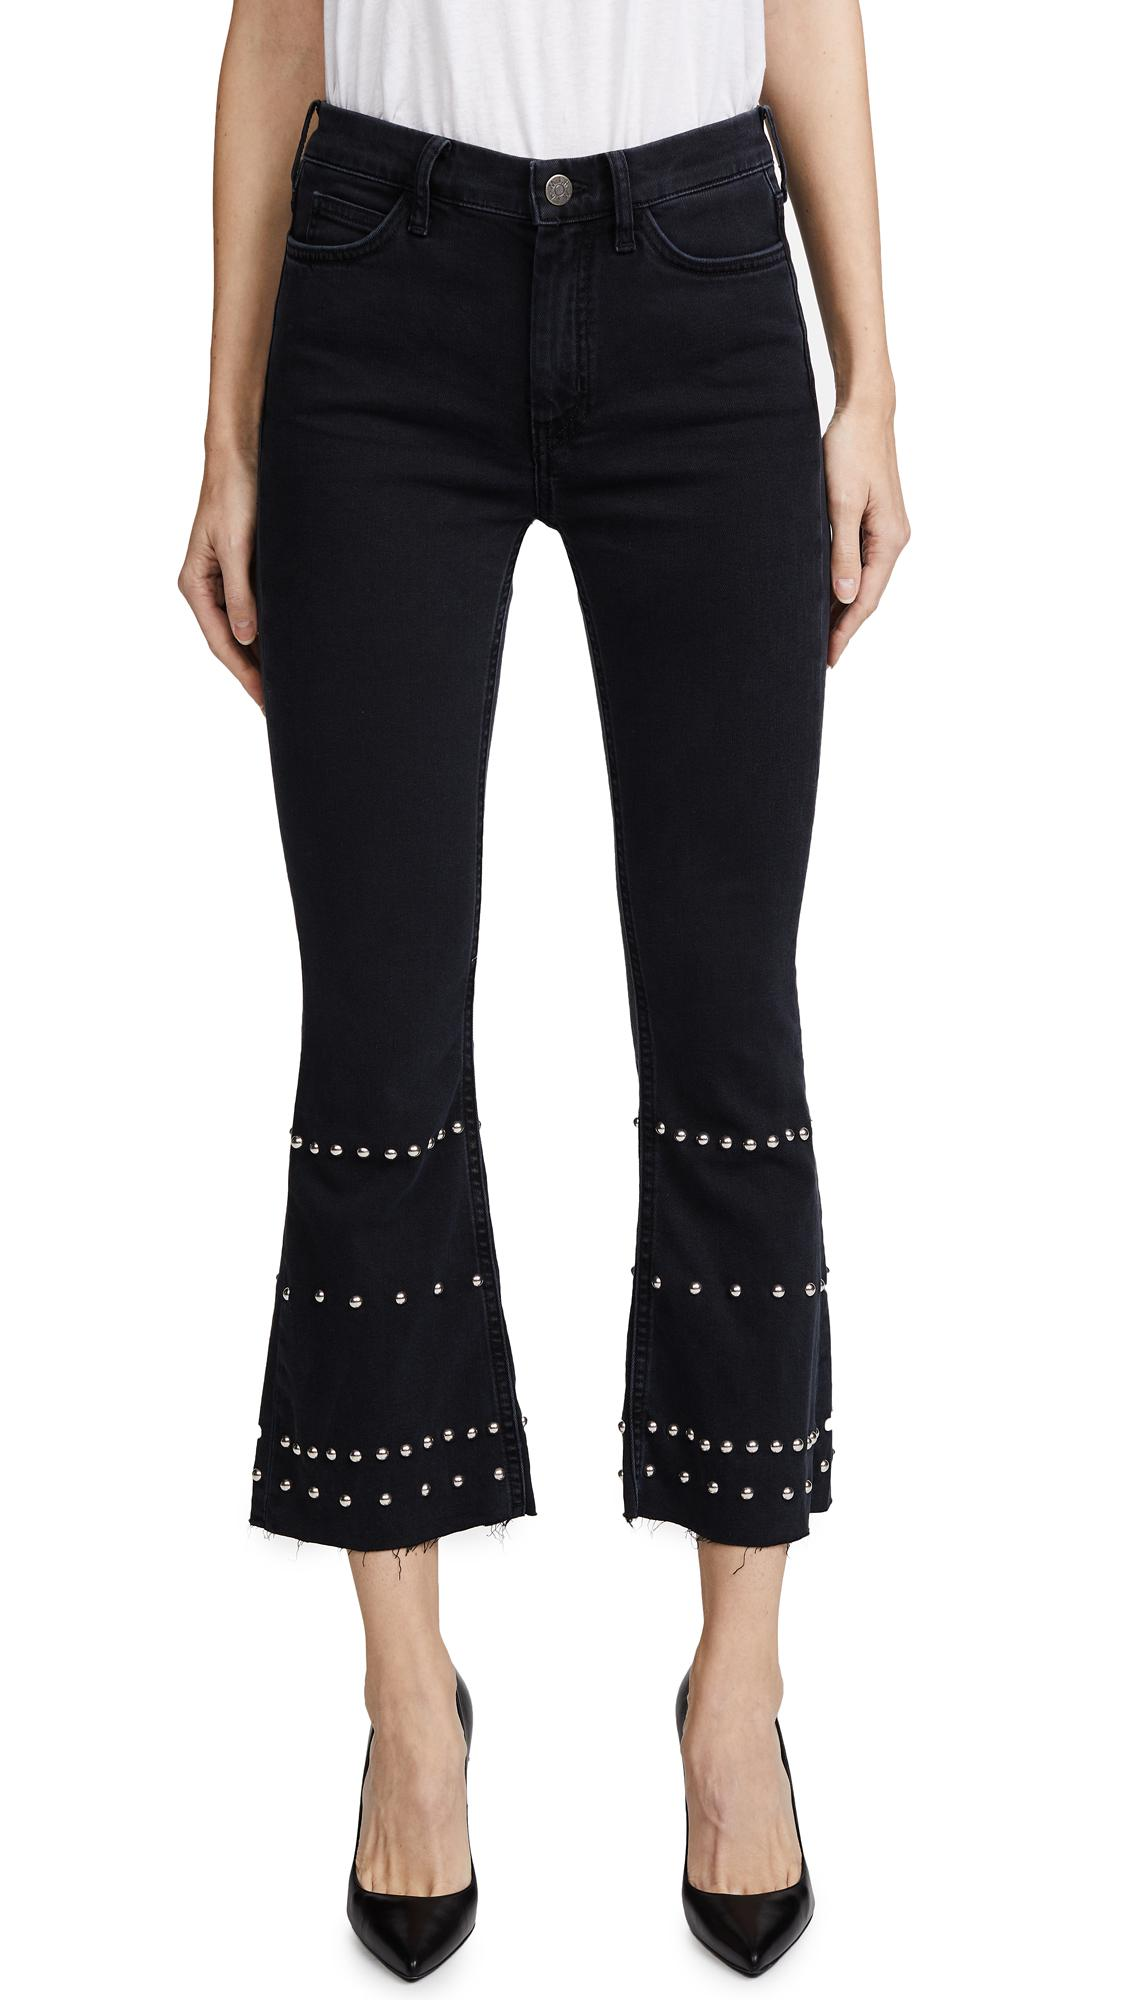 M.i.h Jeans Denim Marty Studded Jeans in Black